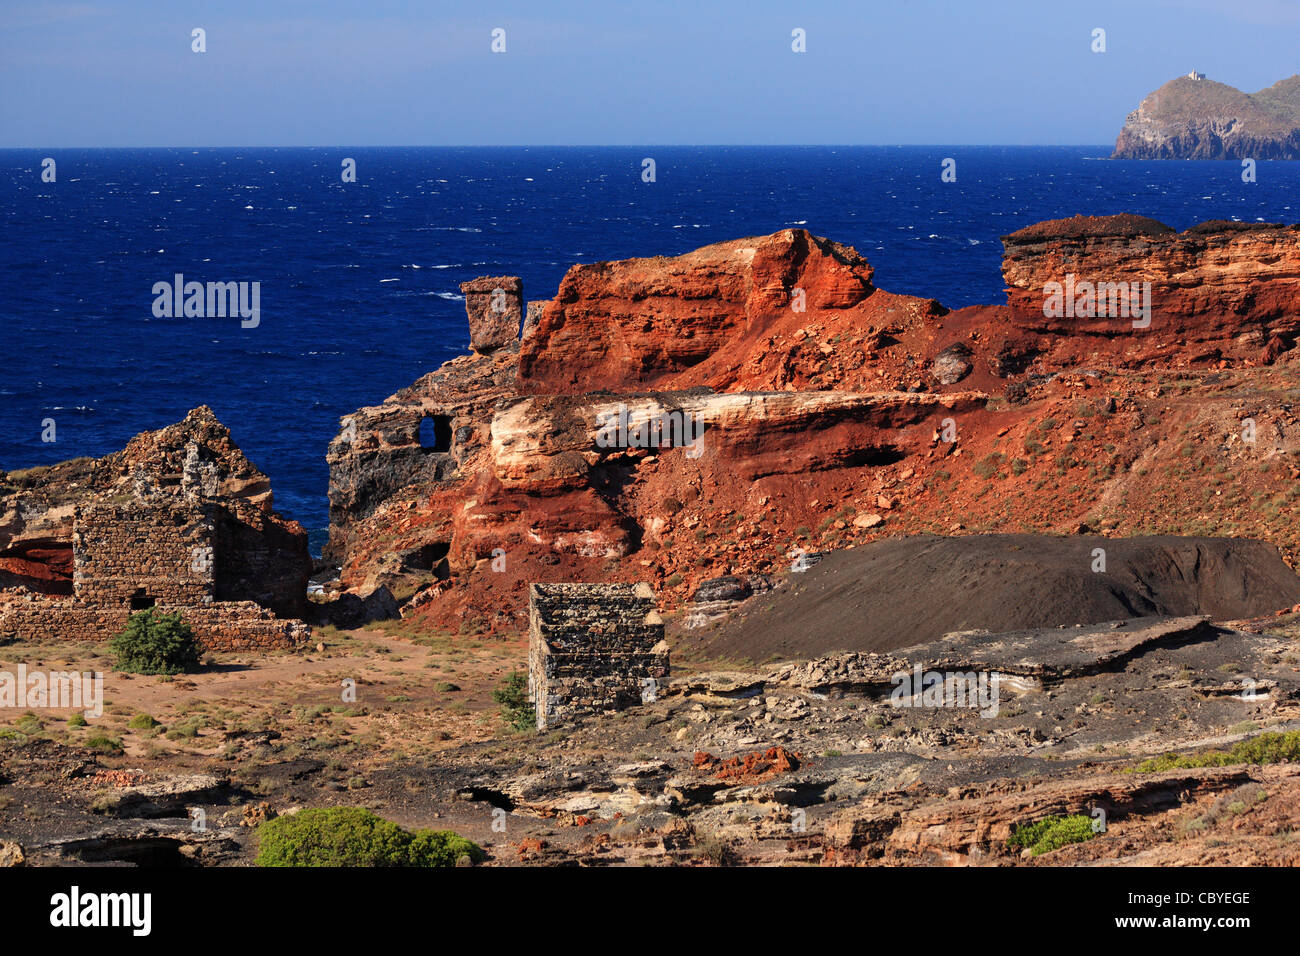 The abandoned iron and magnesium mines at Vani Cape, Milos island, Cyclades, Greece - Stock Image